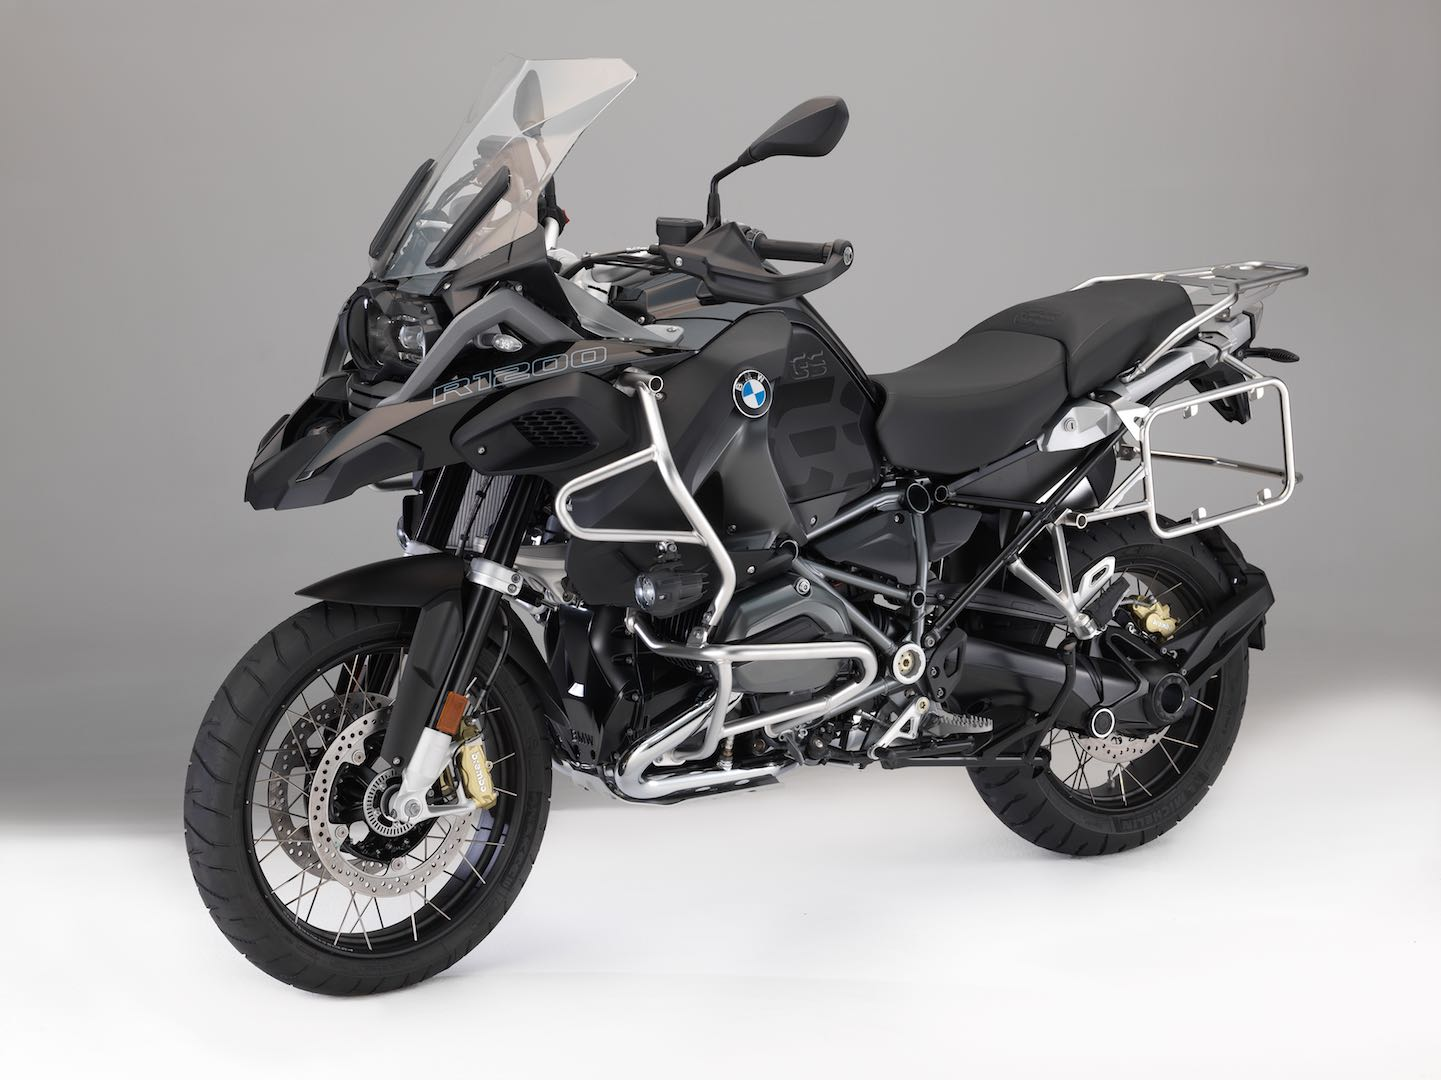 2018 Bmw R 1200 Gs Adventure New Paint Options Like Connectivity